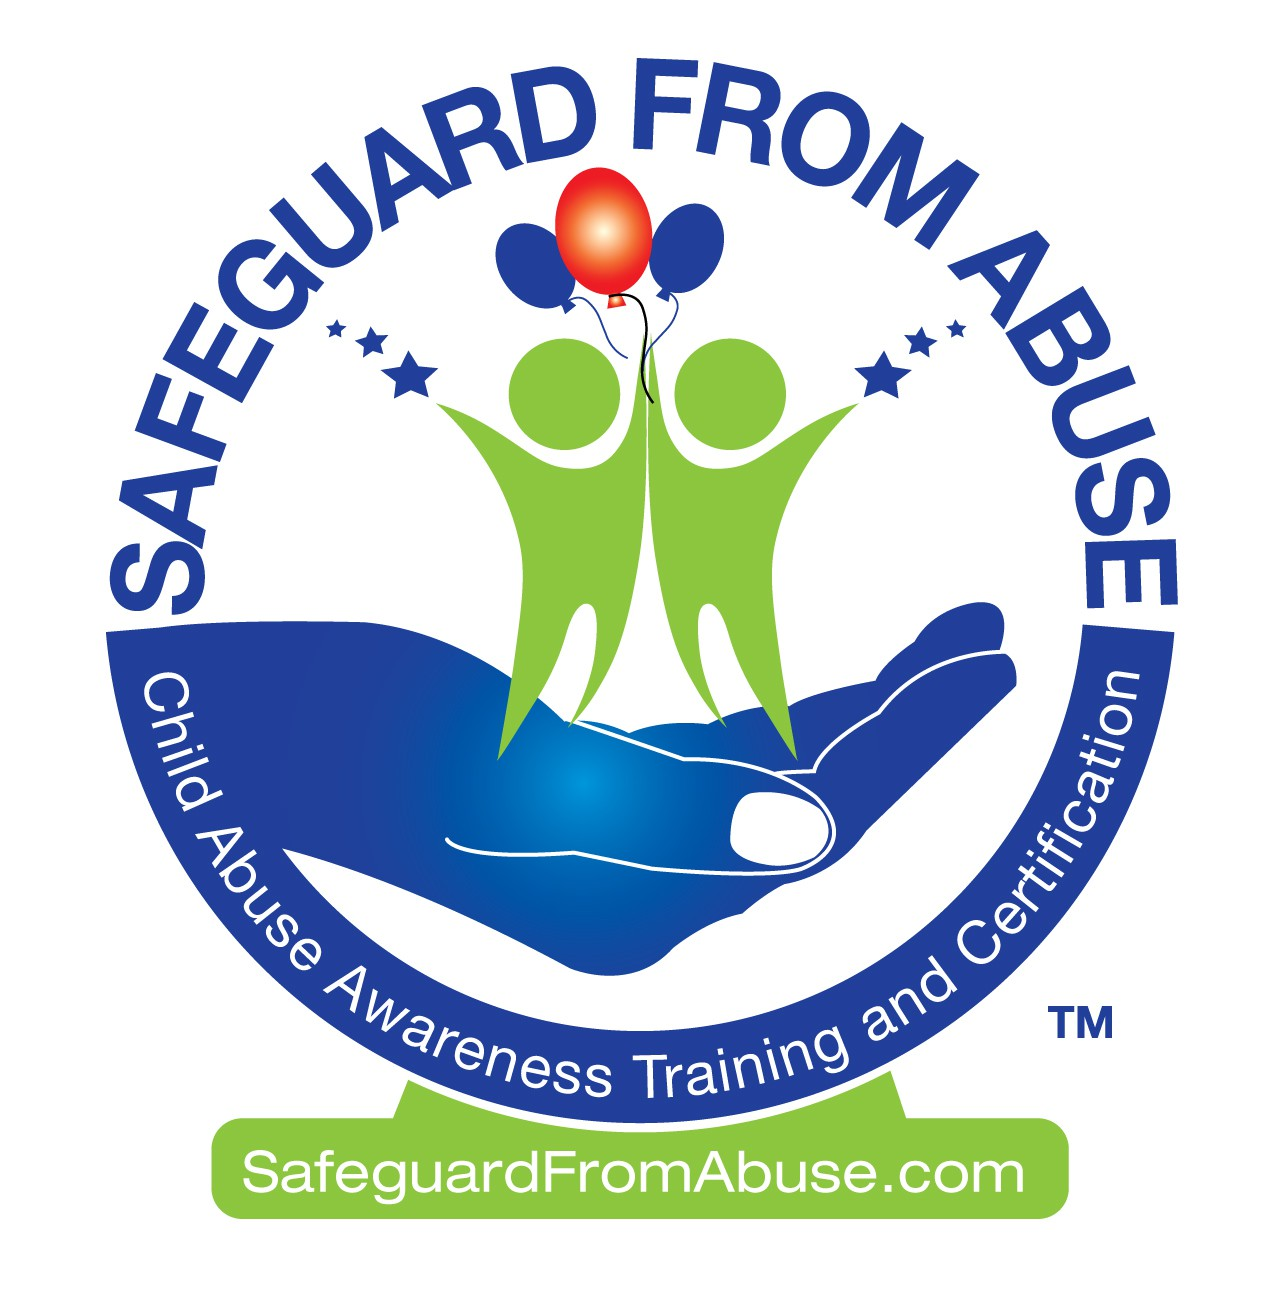 Create the next logo for Safeguard from Abuse